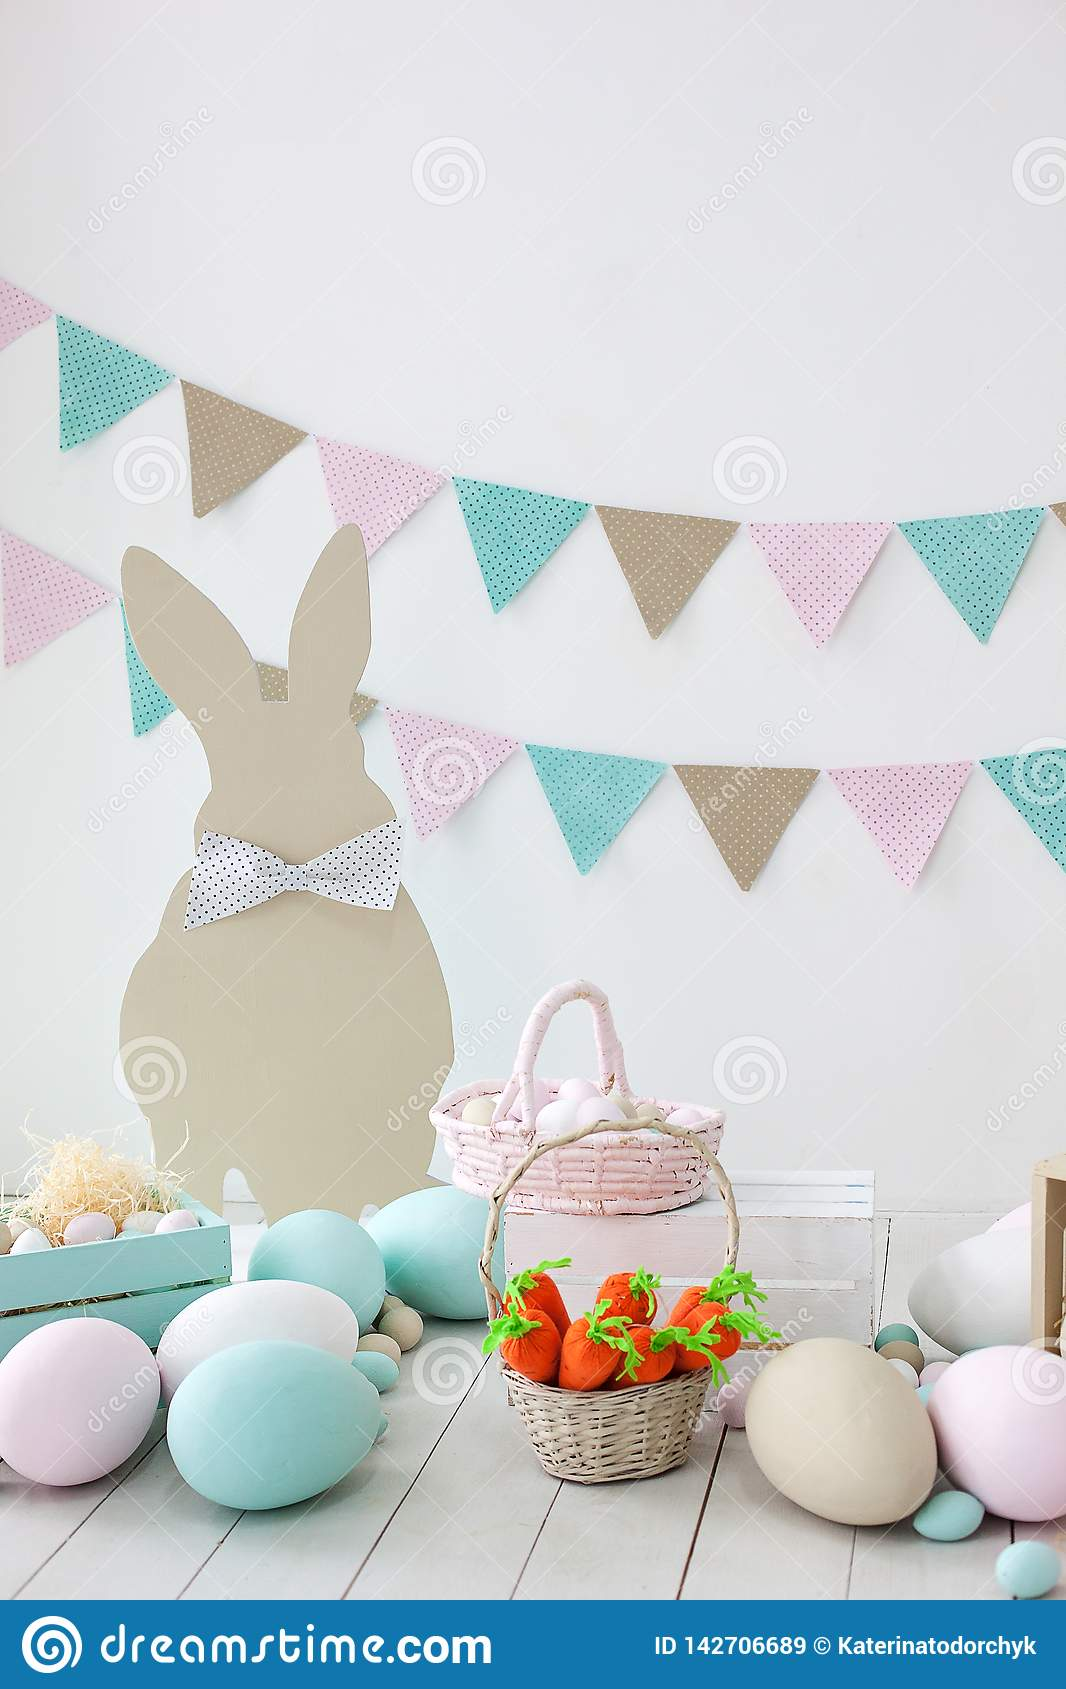 Easter! Many colorful Easter eggs with bunnies and baskets! Easter decoration of the room, children`s room for games. Basket with